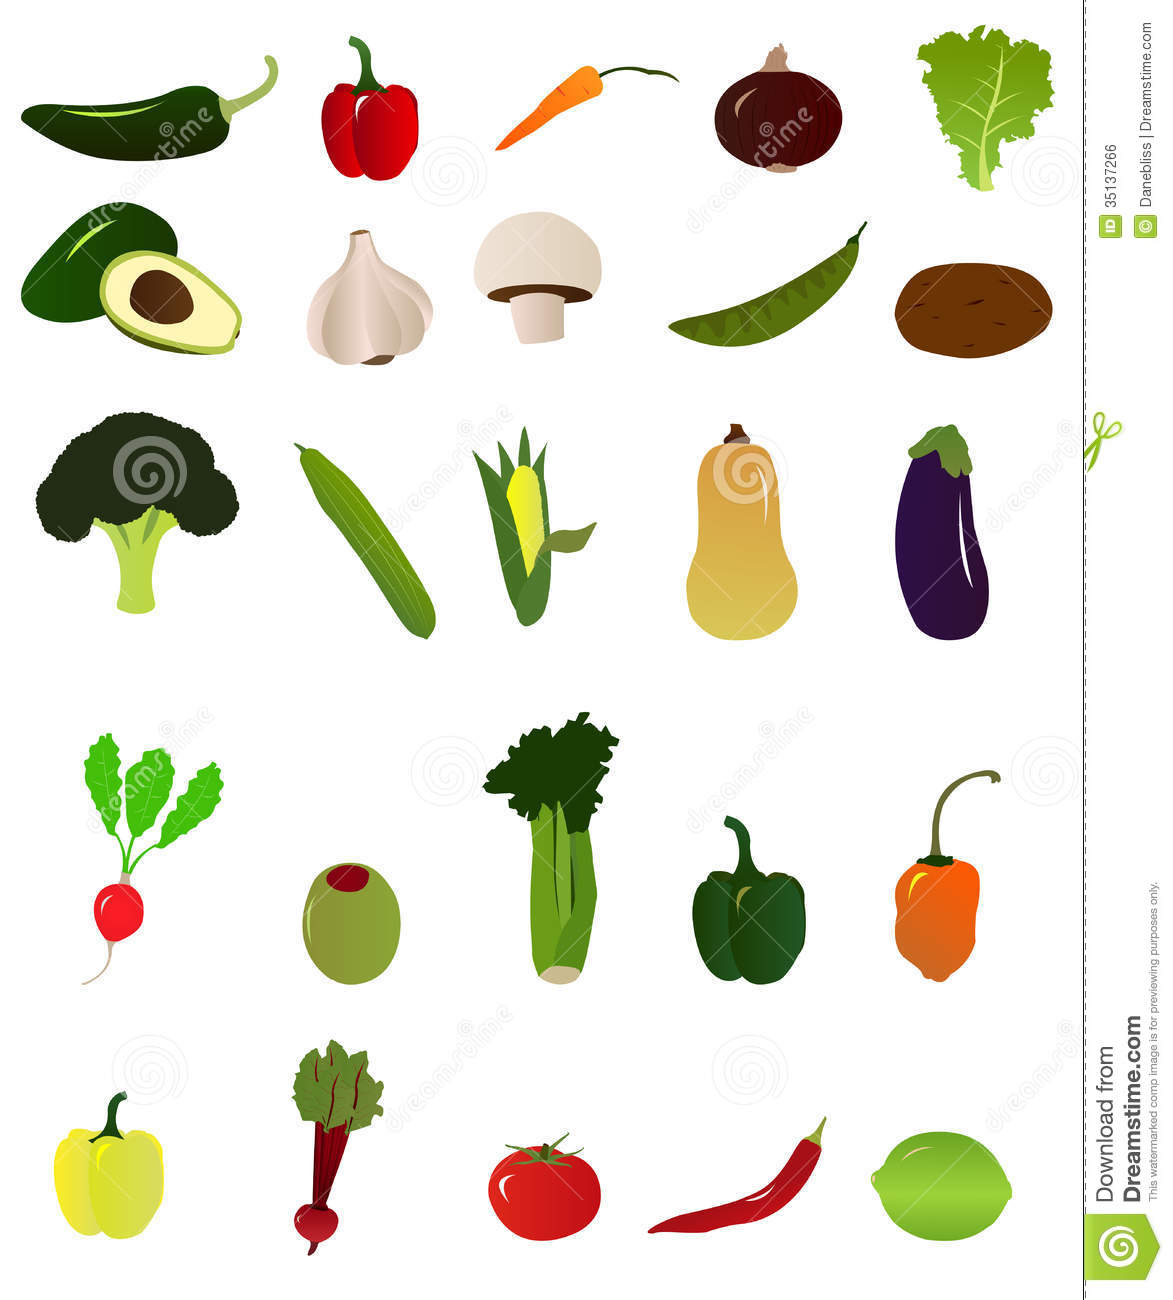 Multiple assorted vegetables shown in a vector illustration.